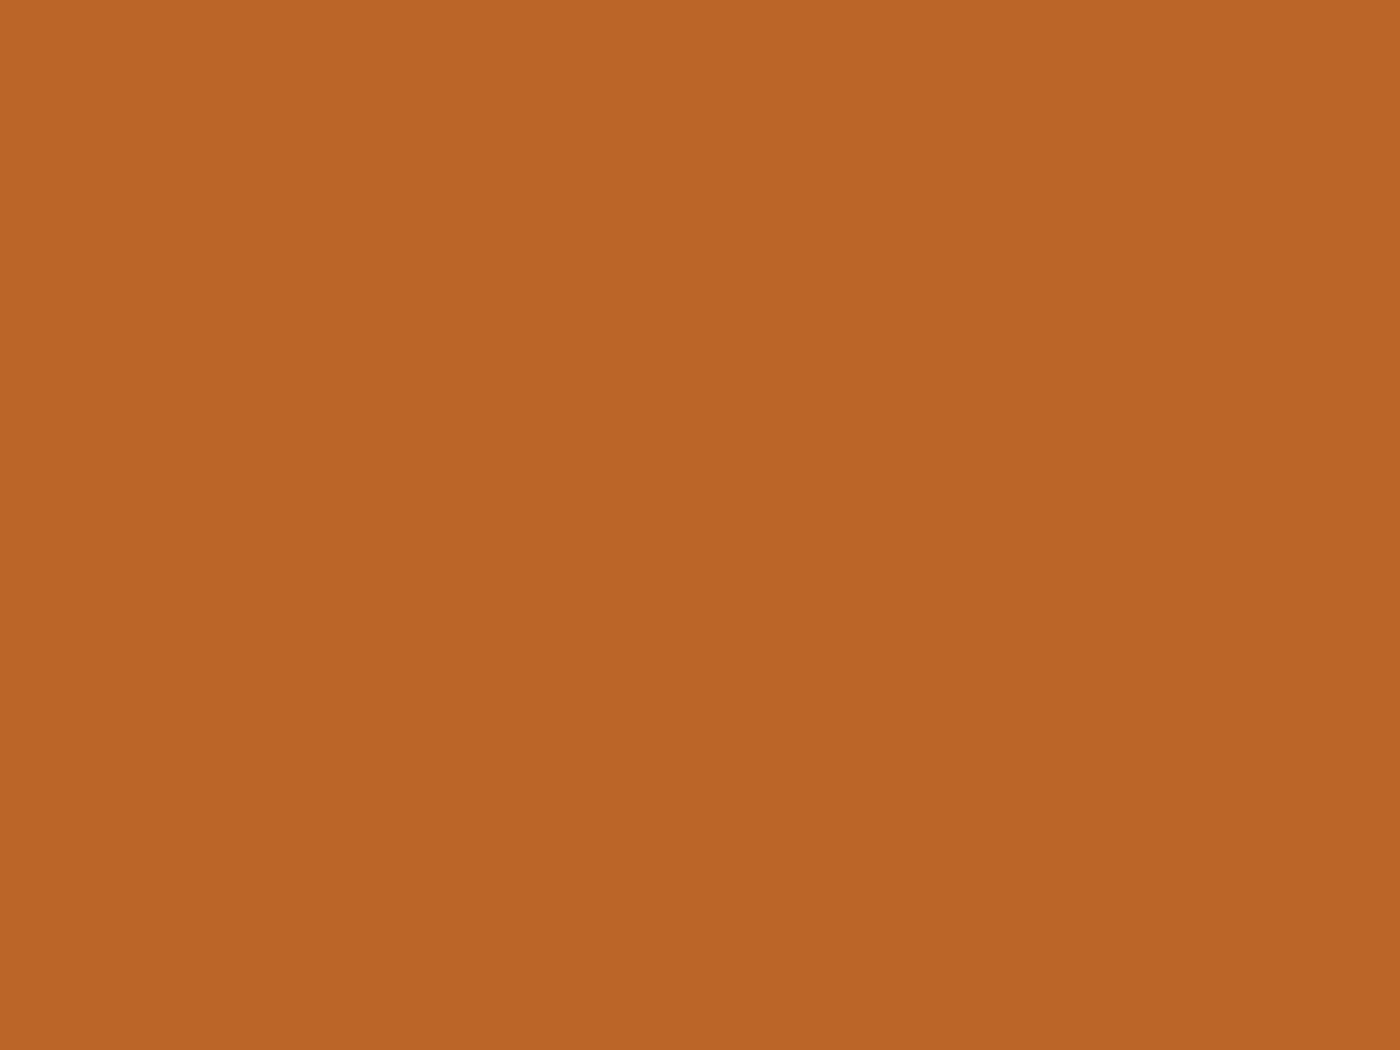 1400x1050 Ruddy Brown Solid Color Background